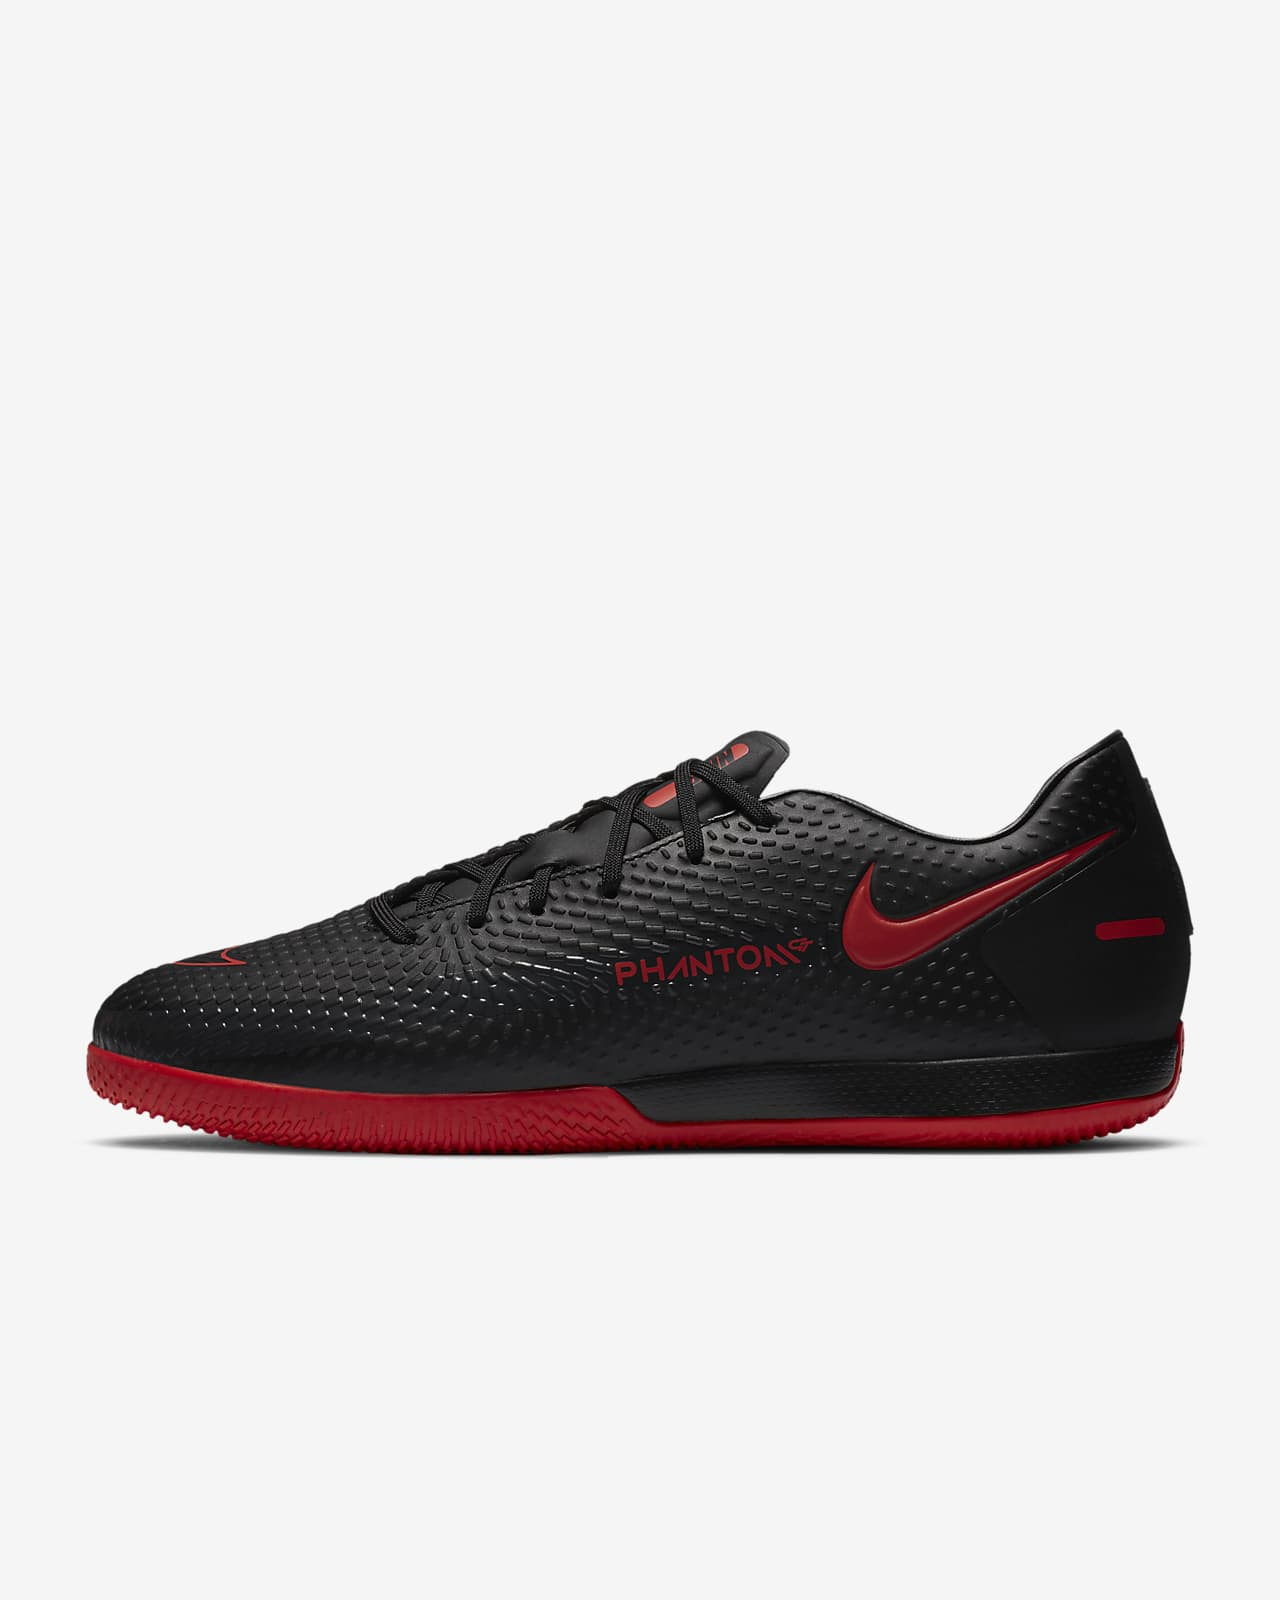 Nike Phantom GT Academy IC Indoor Court Football Shoe